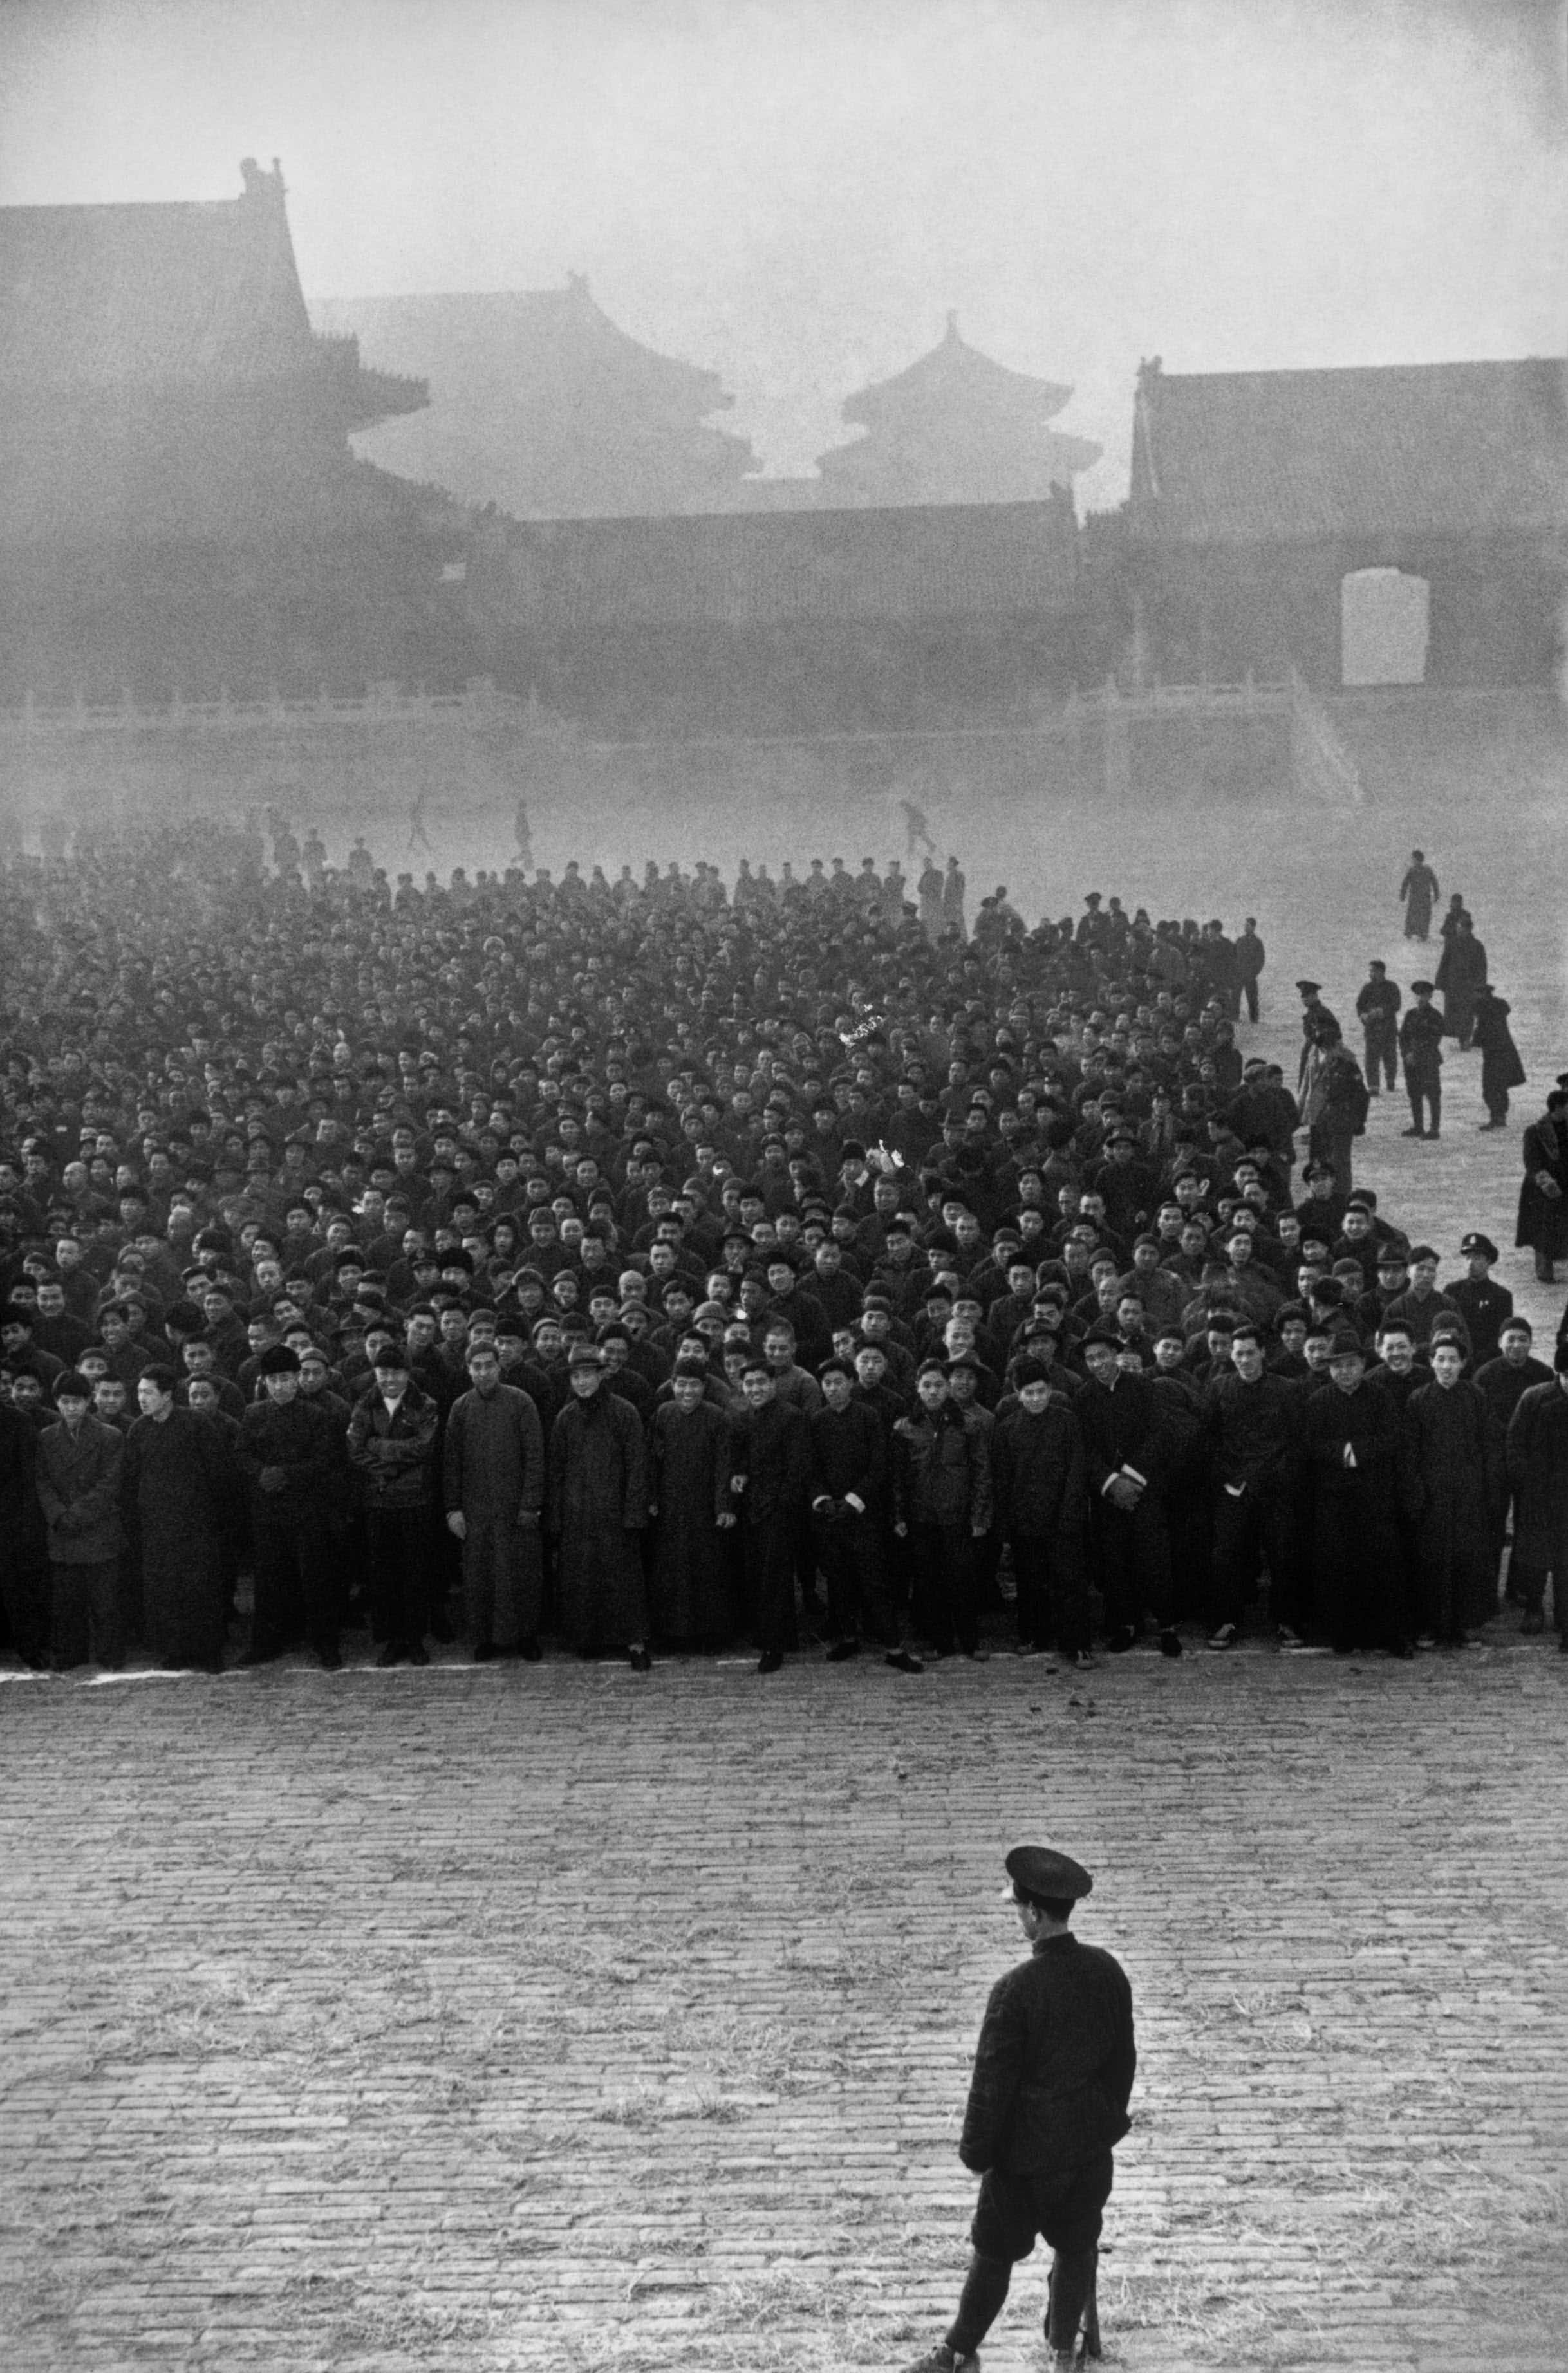 Early in the morning in the Forbidden City, 10,000 new recruits to form a Nationalist regiment, Bijing, Dec. 1948 © Foundation HCB/Magnum Photos